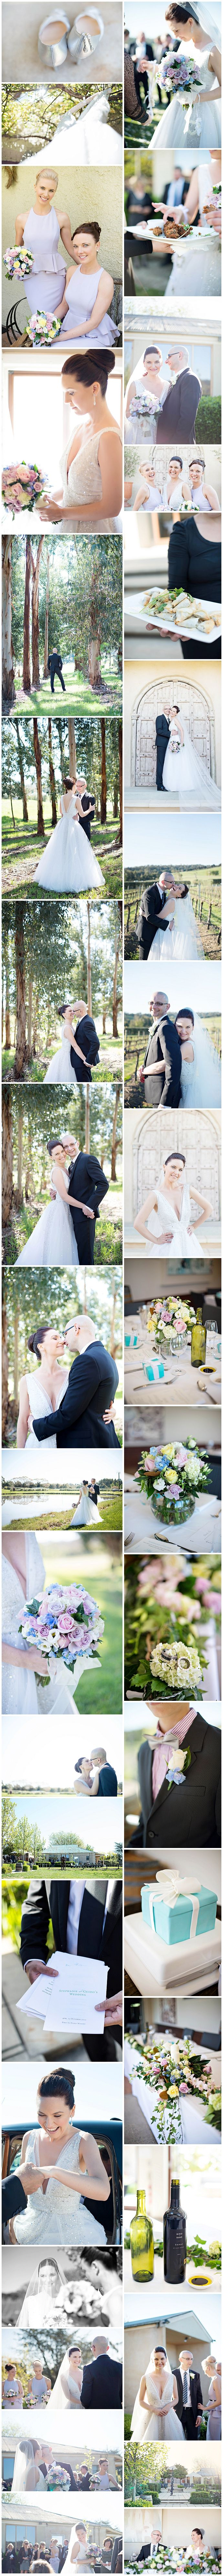 Bird in Hand Winery Wedding Adelaide Hills Wedding Photographed by Emma Sharkey Photography Livia Loren Gown Tiffany Blue themed wedding with touches of pastels. Wedding Inspiration Ceremony and Reception styling